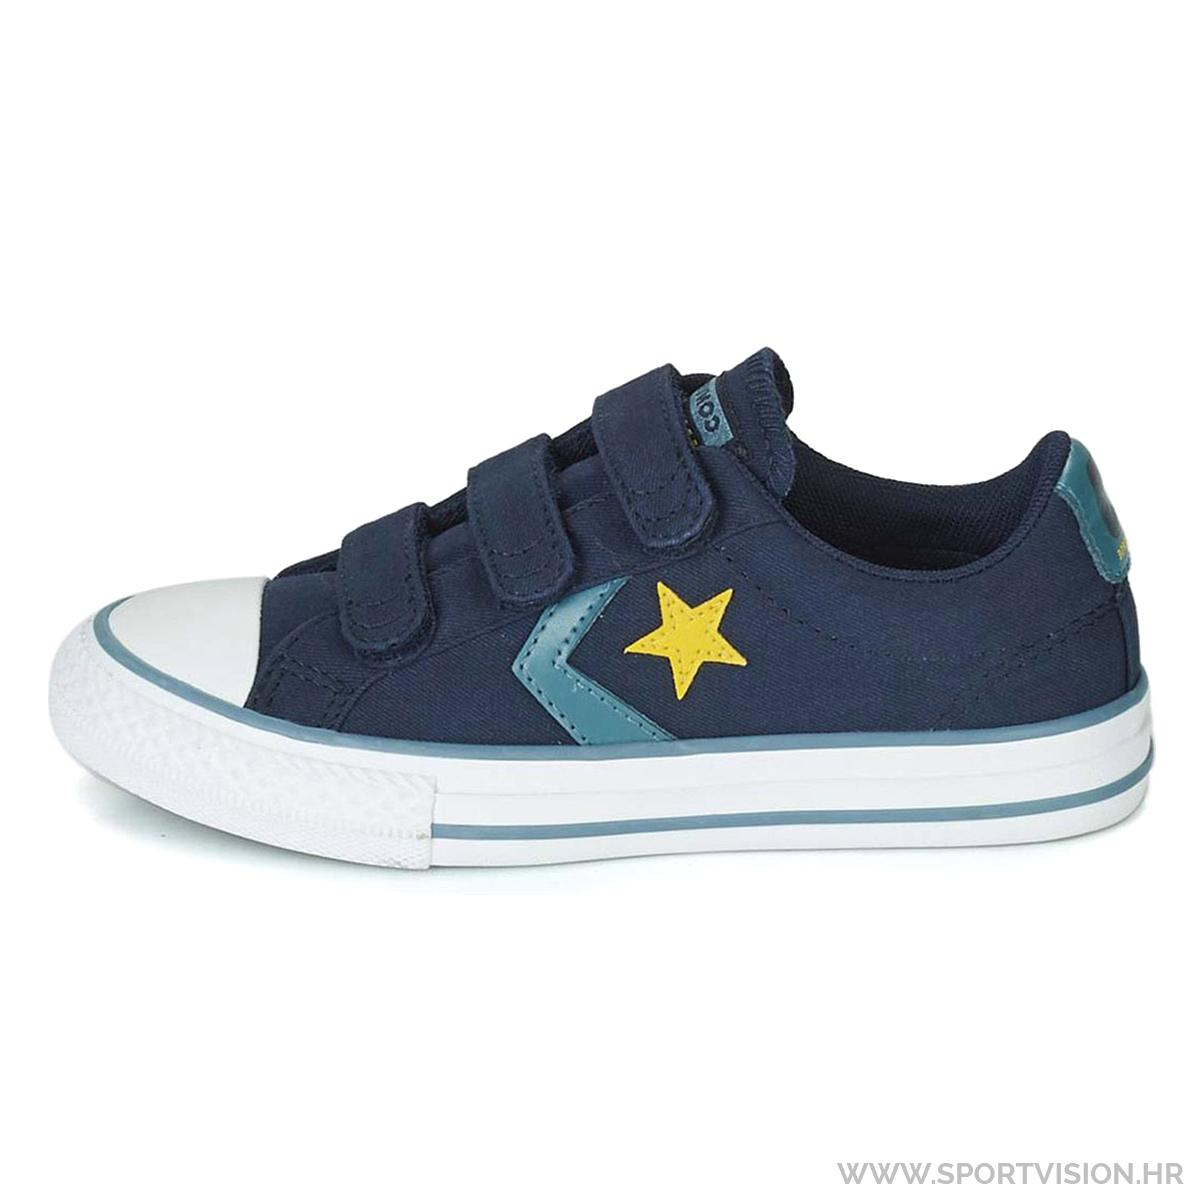 CONVERSE tenisice STAR PLAYER 3V